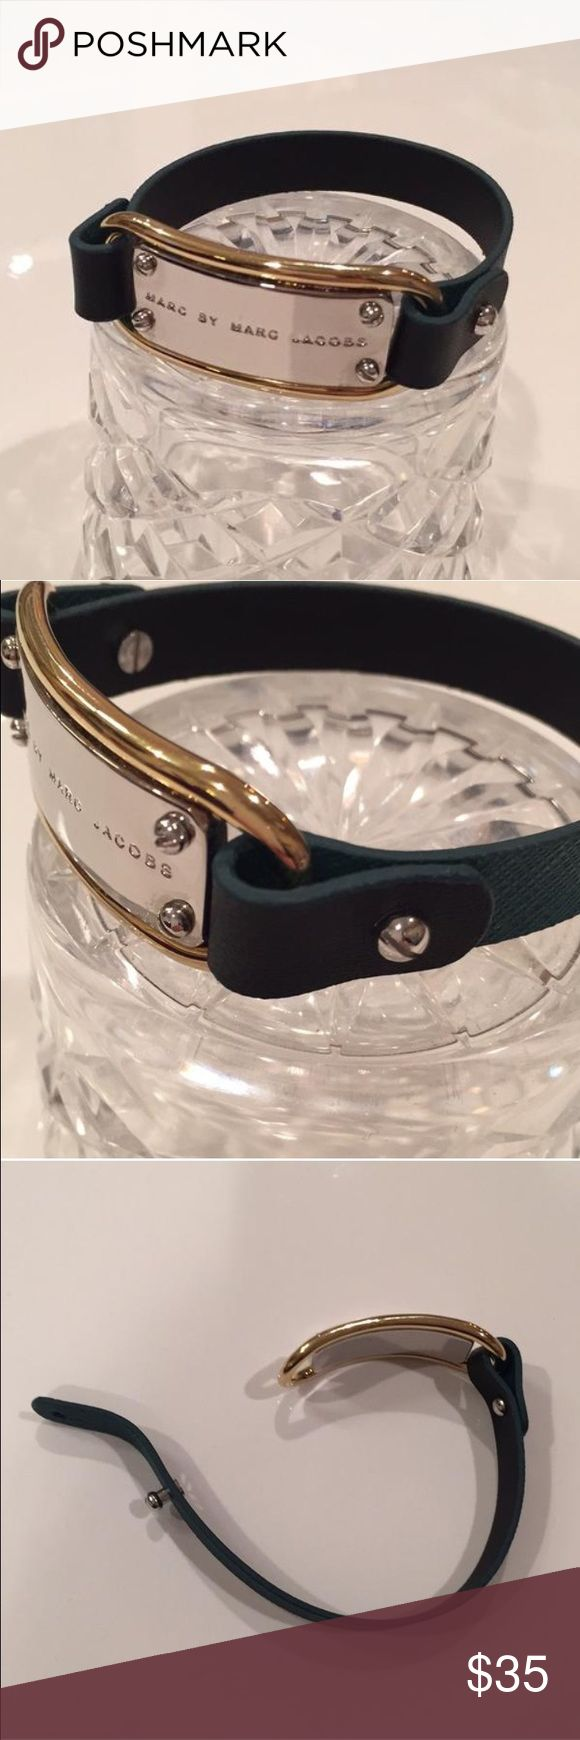 Marc by Marc Jacobs | Bracelet in Green + Silver Deep forest green armband with black back accentuated by silver metallic plaque with a gold border and engraved with iconic Marc by Marc Jacobs logo. Wear alone or stack with additional colorful bangles. Condition: New, no tags Marc by Marc Jacobs Jewelry Bracelets